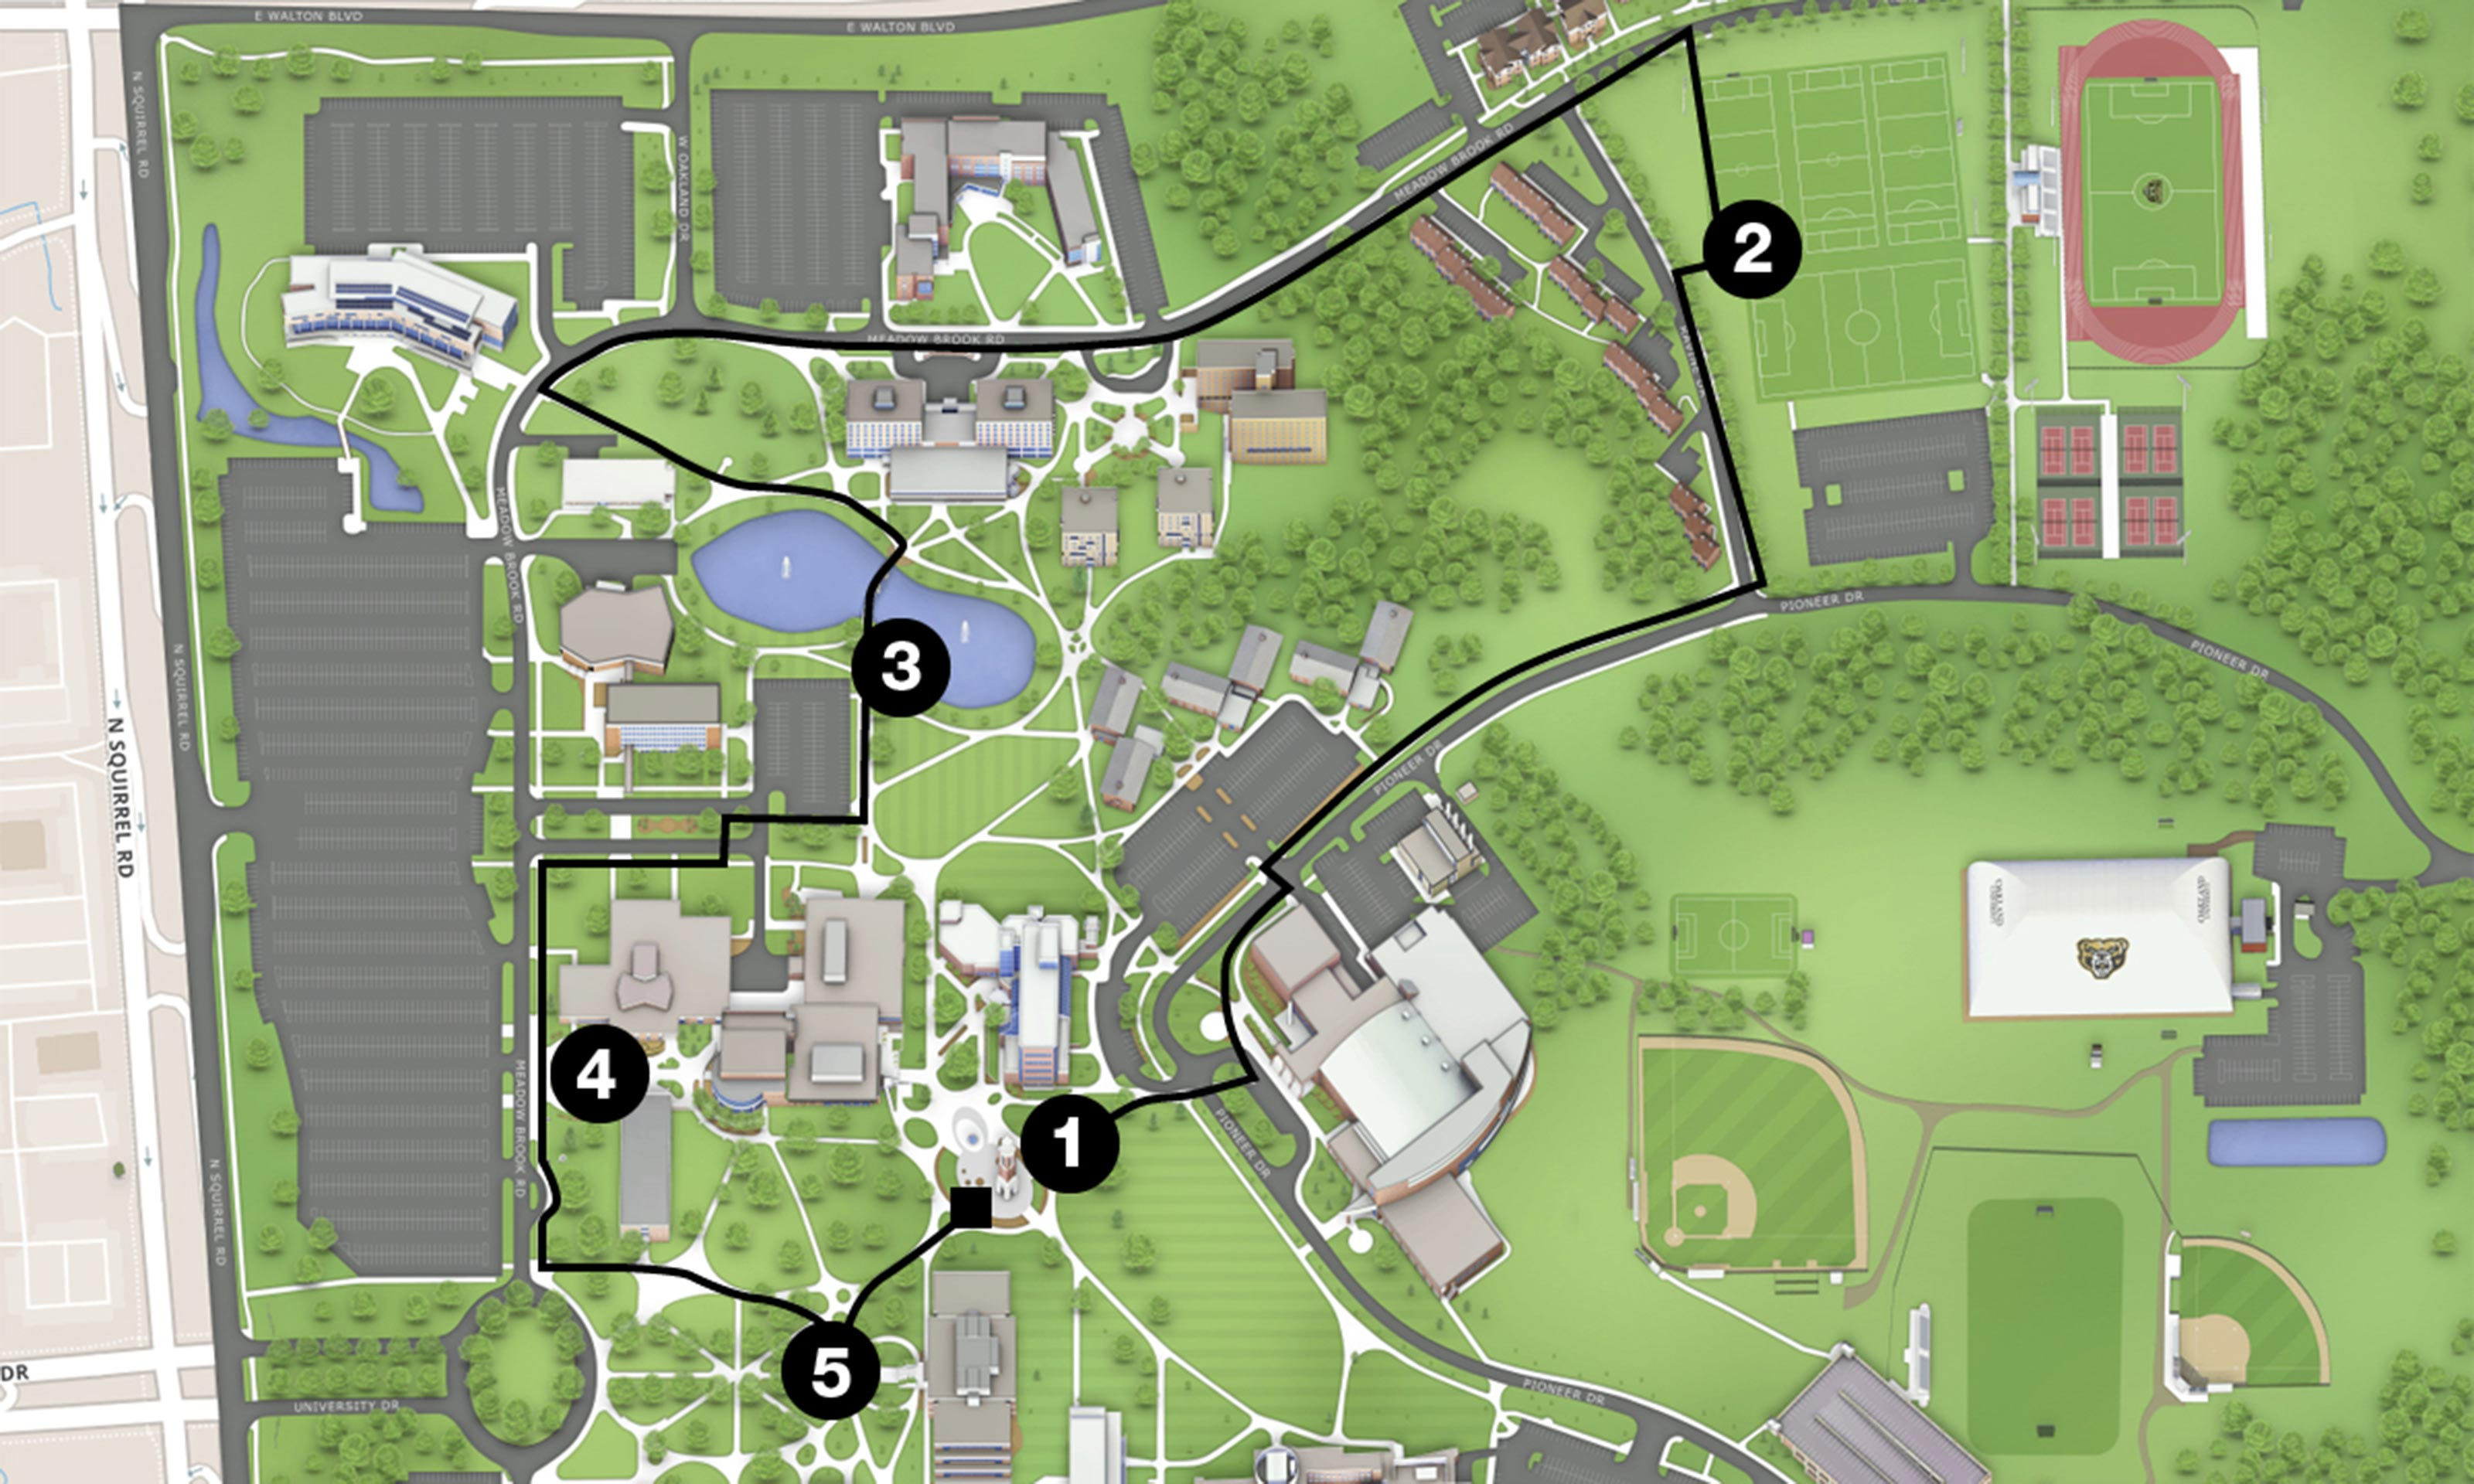 5K course route at Oakland University in Rochester Hills